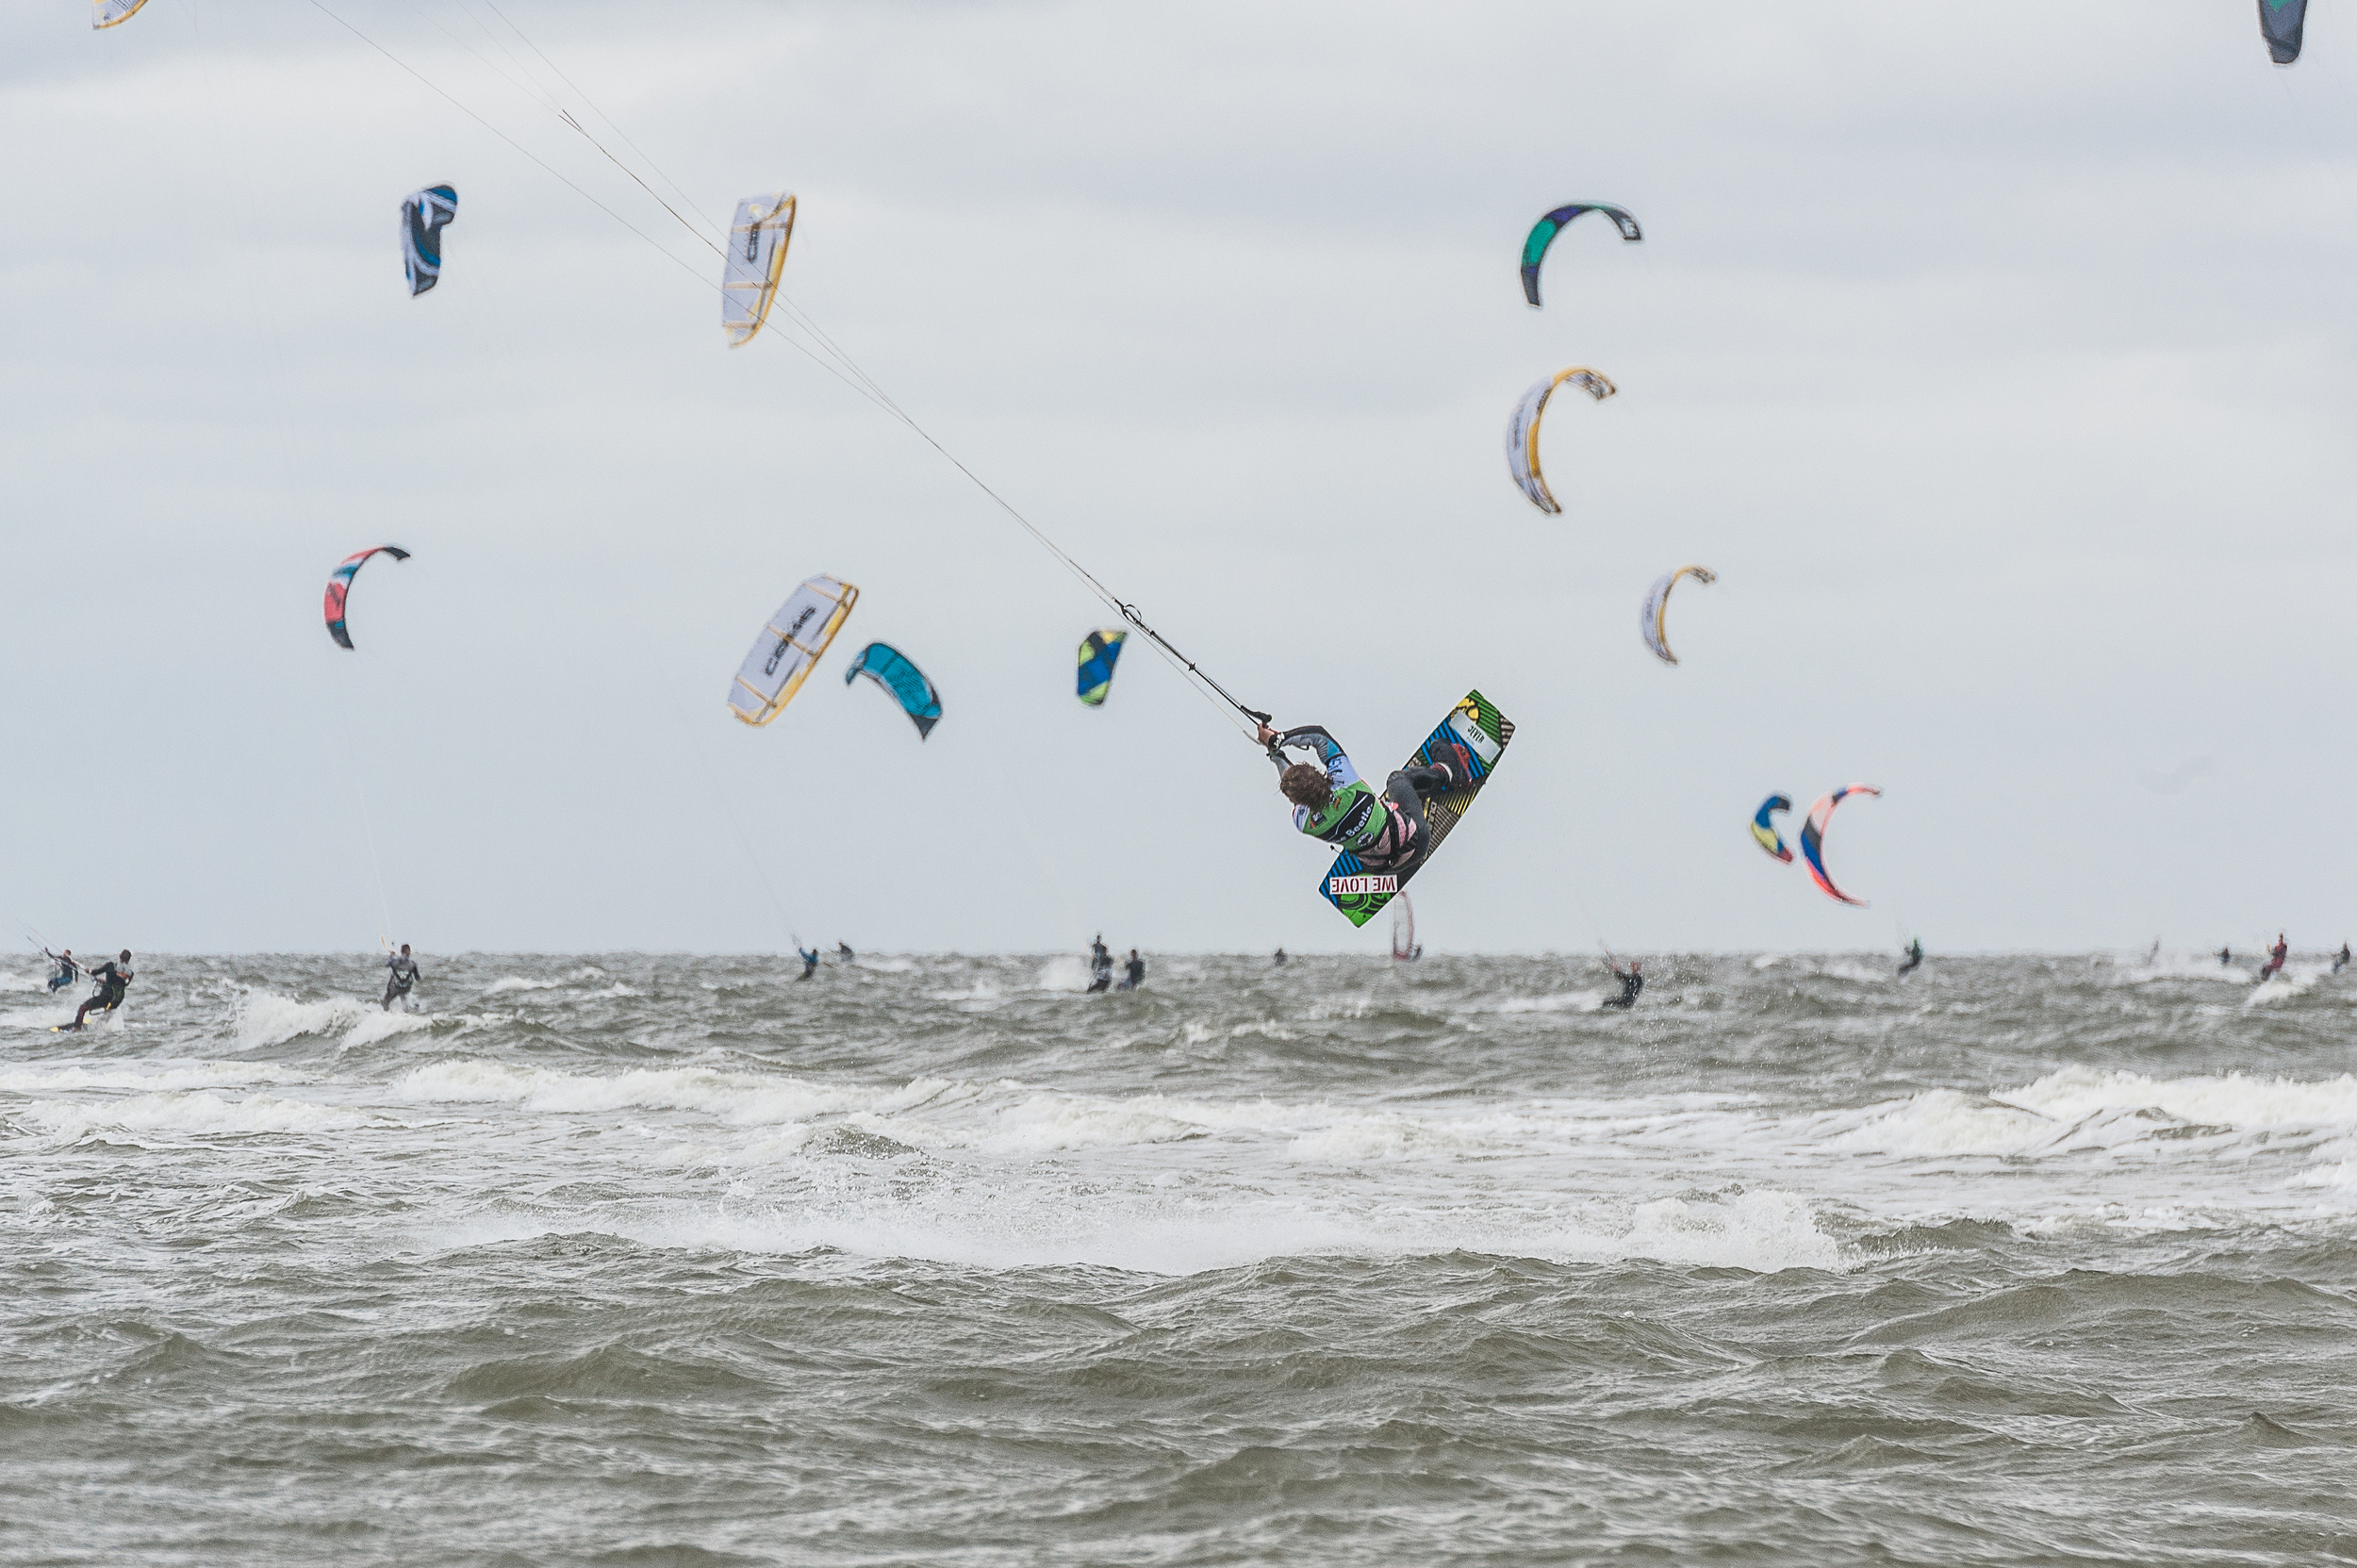 Kite Surf World Cup, St.Peter Ording, Germany